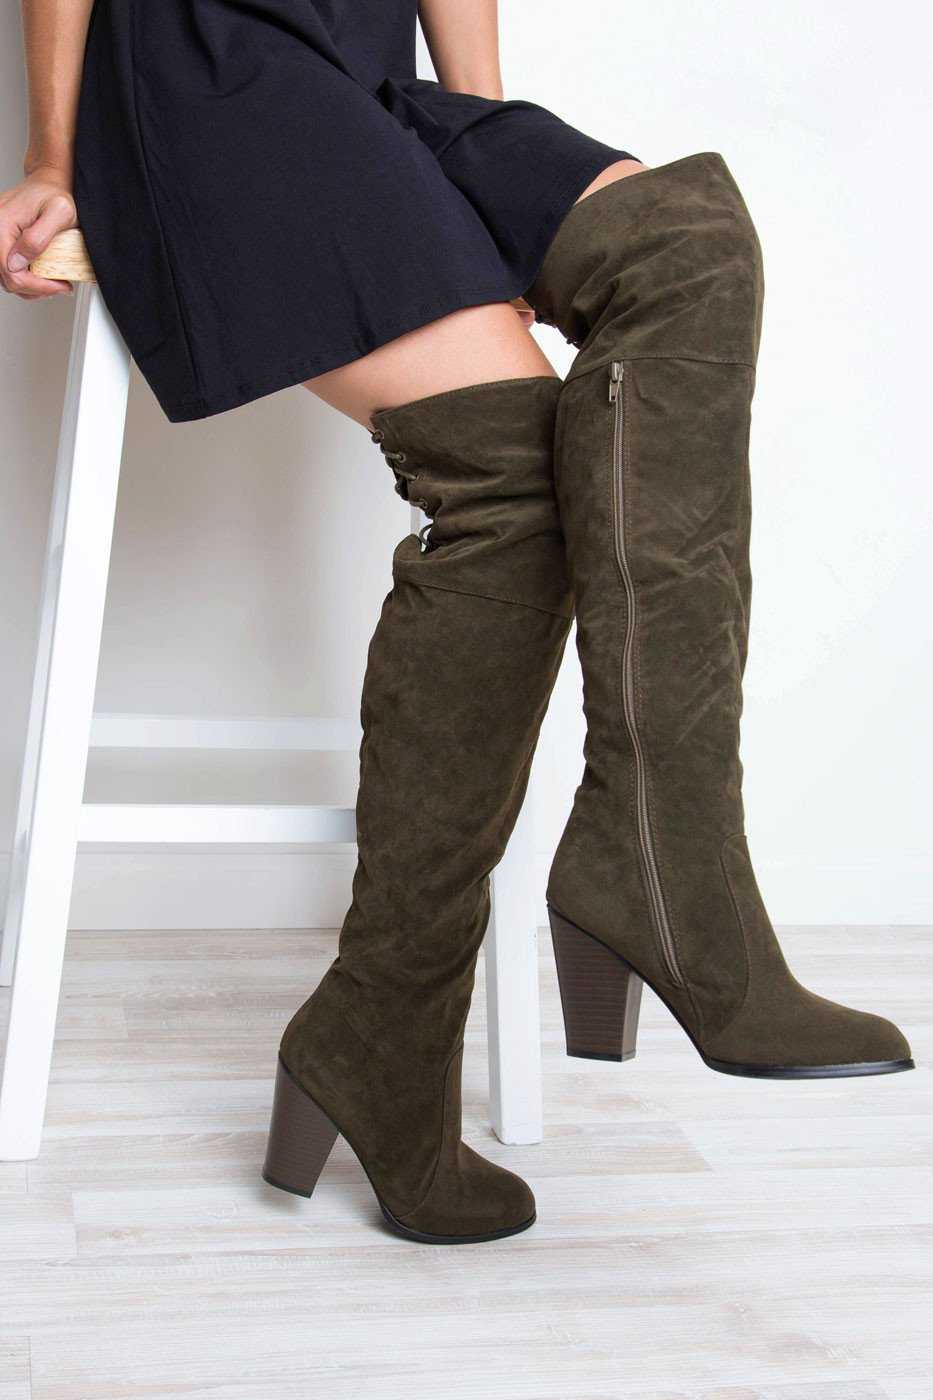 Boots - Locklyn Suede Knee High Boots - Olive